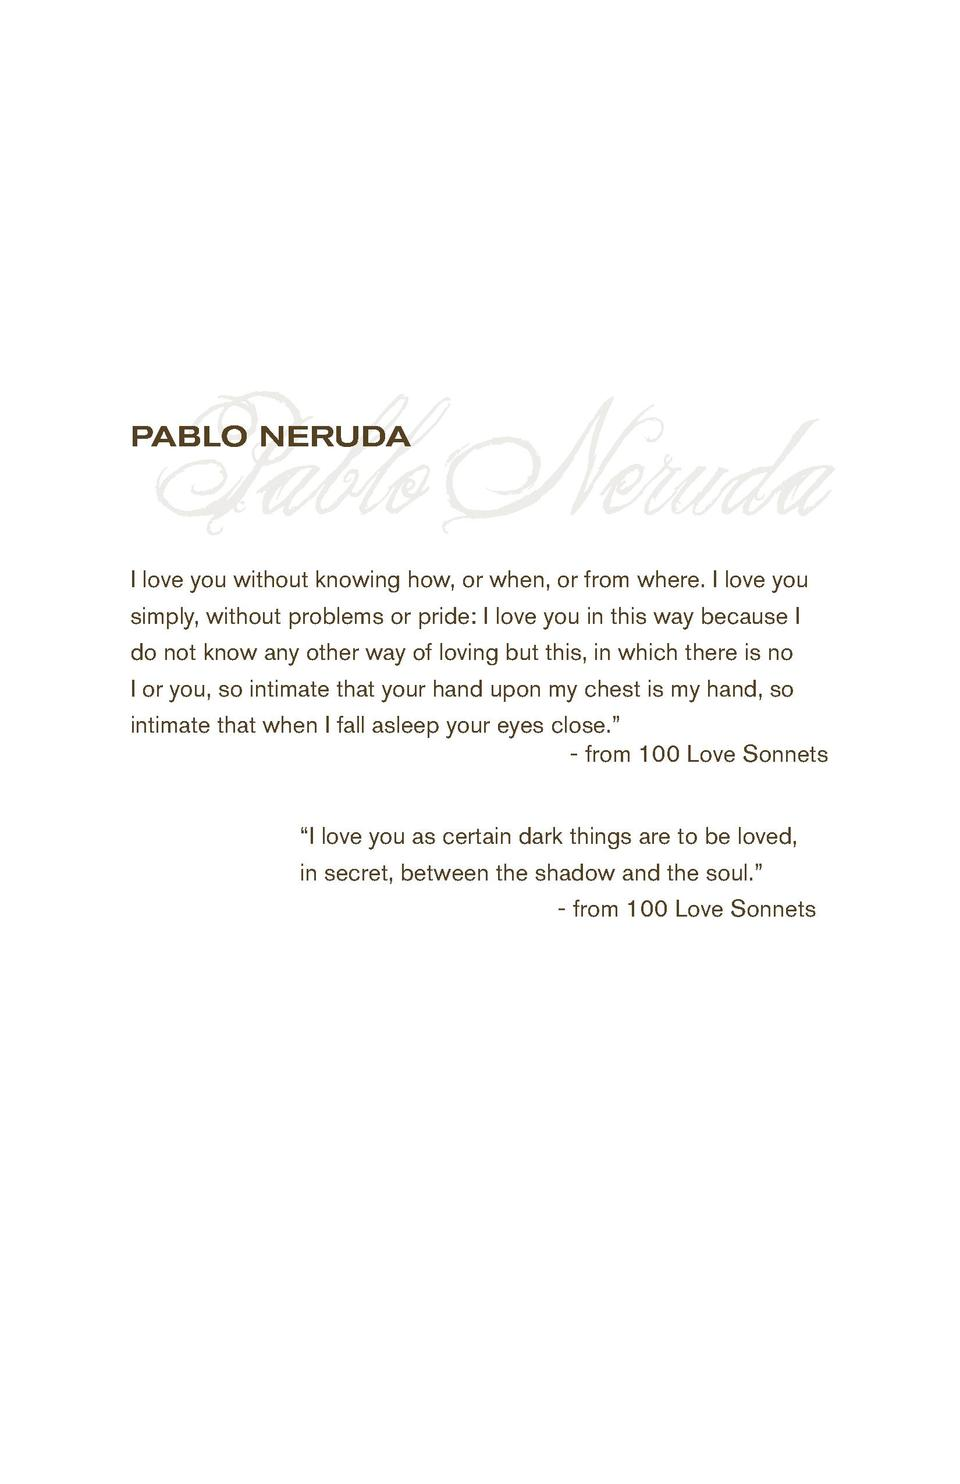 Pablo Neruda  PABLO NERUDA  I love you without knowing how, or when, or from where. I love you simply, without problems or...